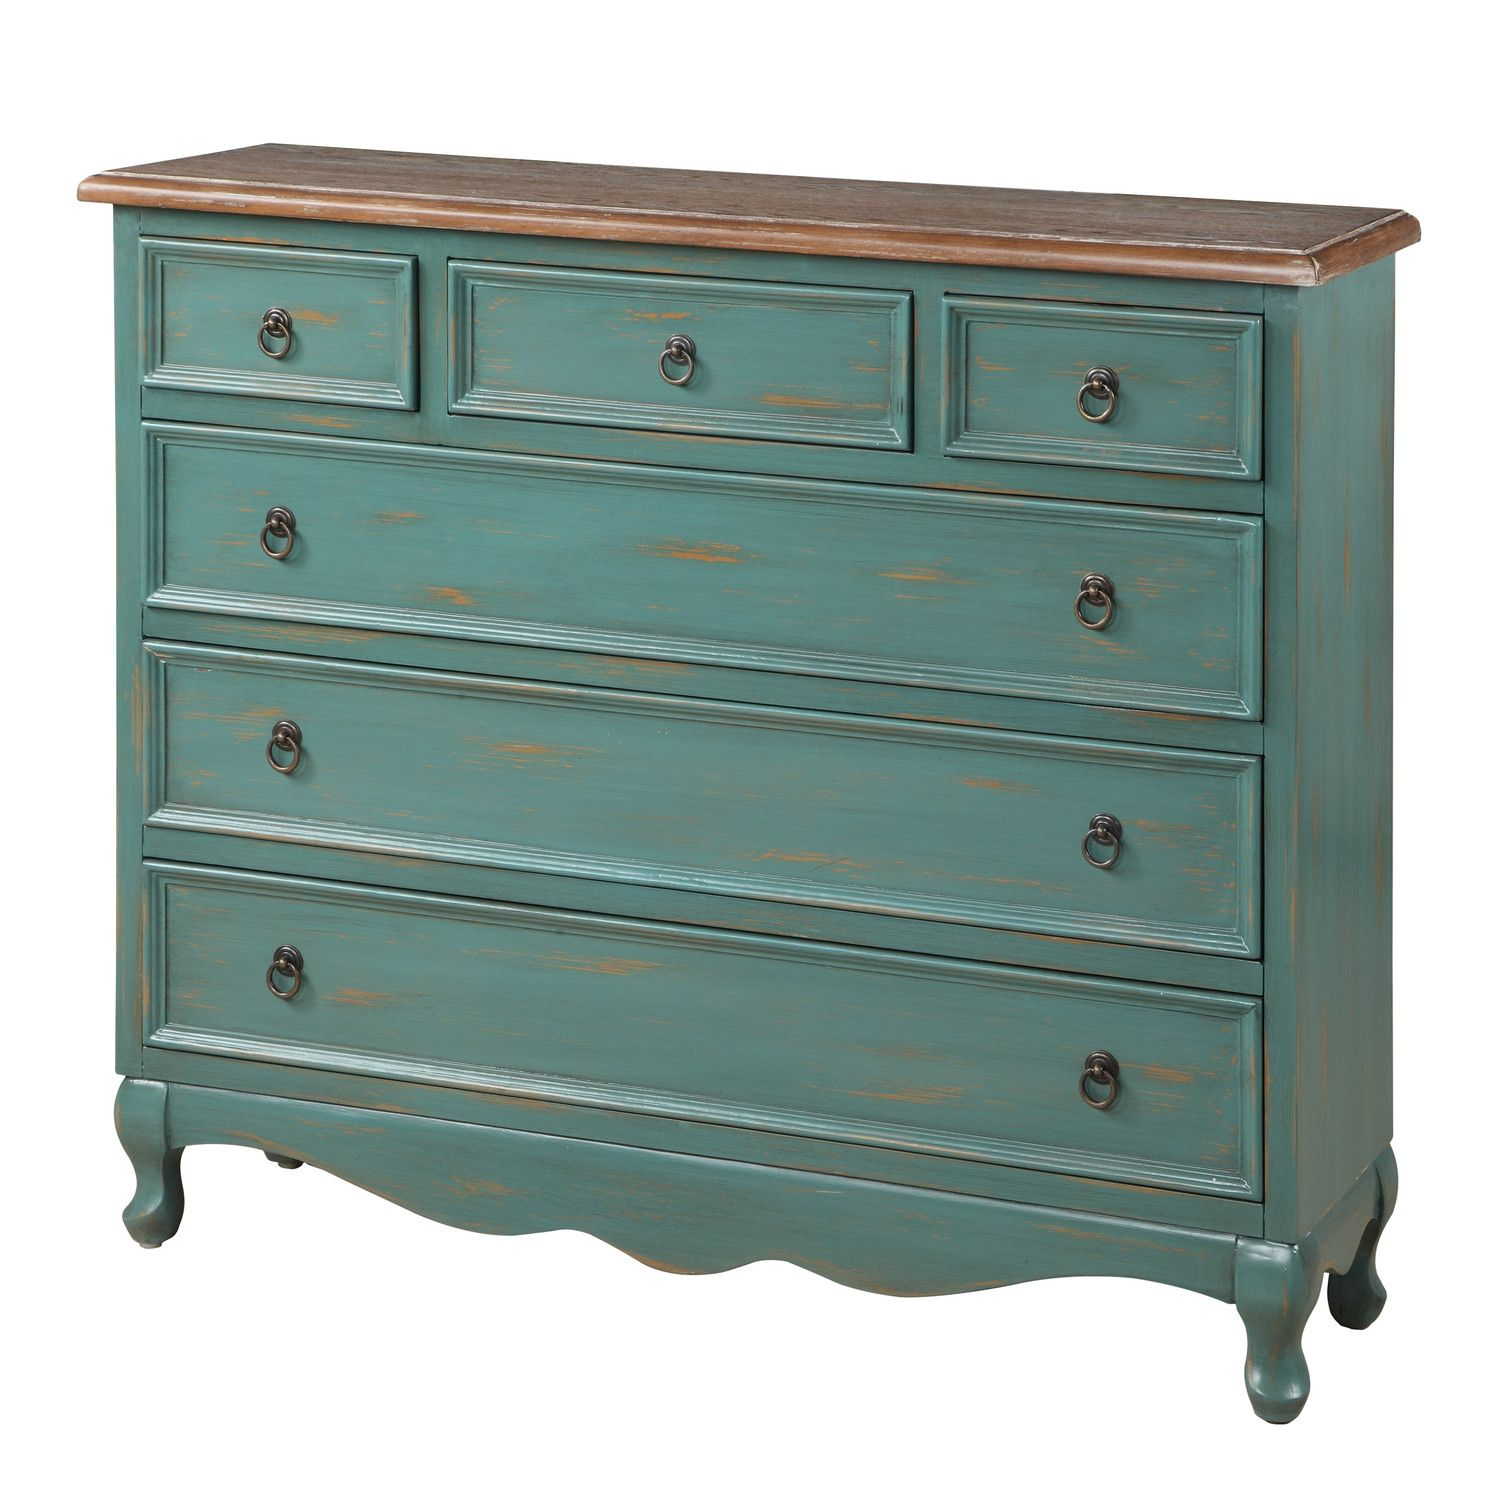 Gail S Accents Cottage 6 Drawer Narrow Chest Shabby Chic Furniture Furniture Small Bathroom Vanities